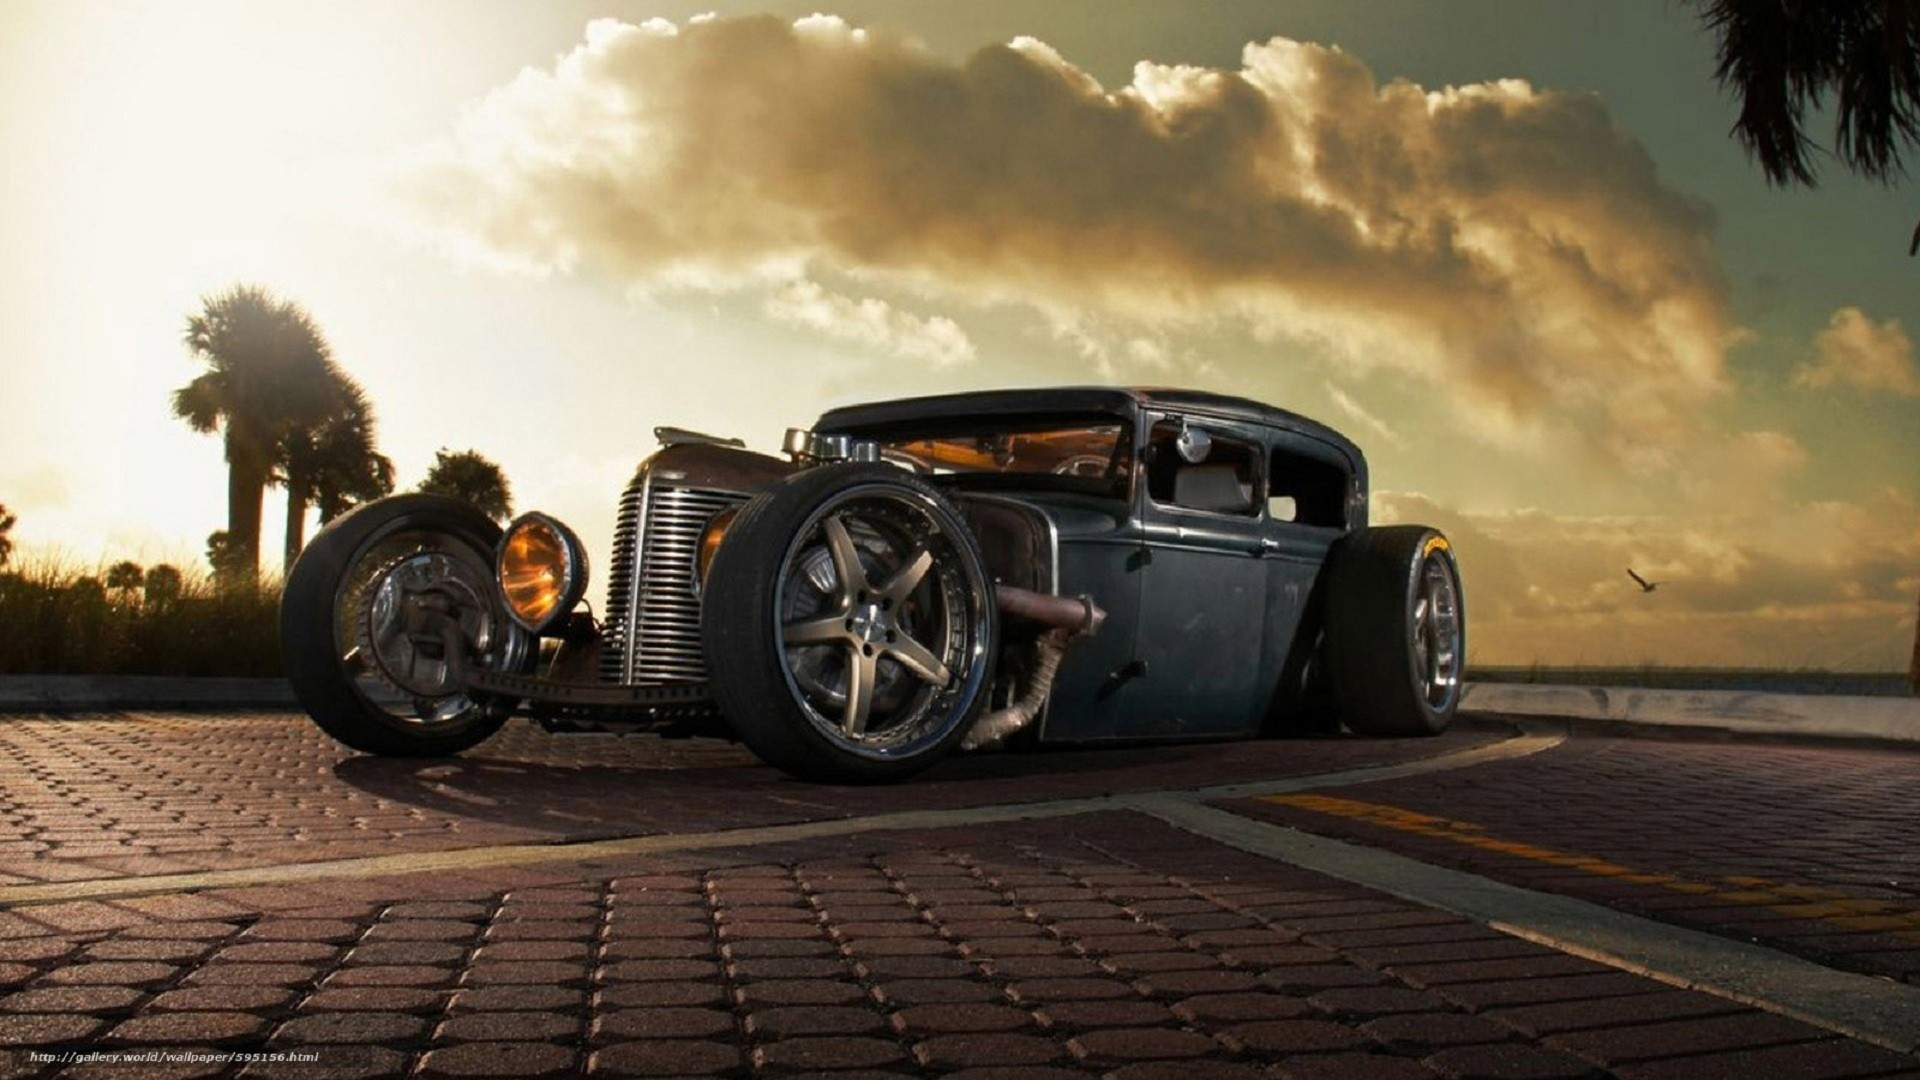 Rat Rod Free Wallpaper and Background